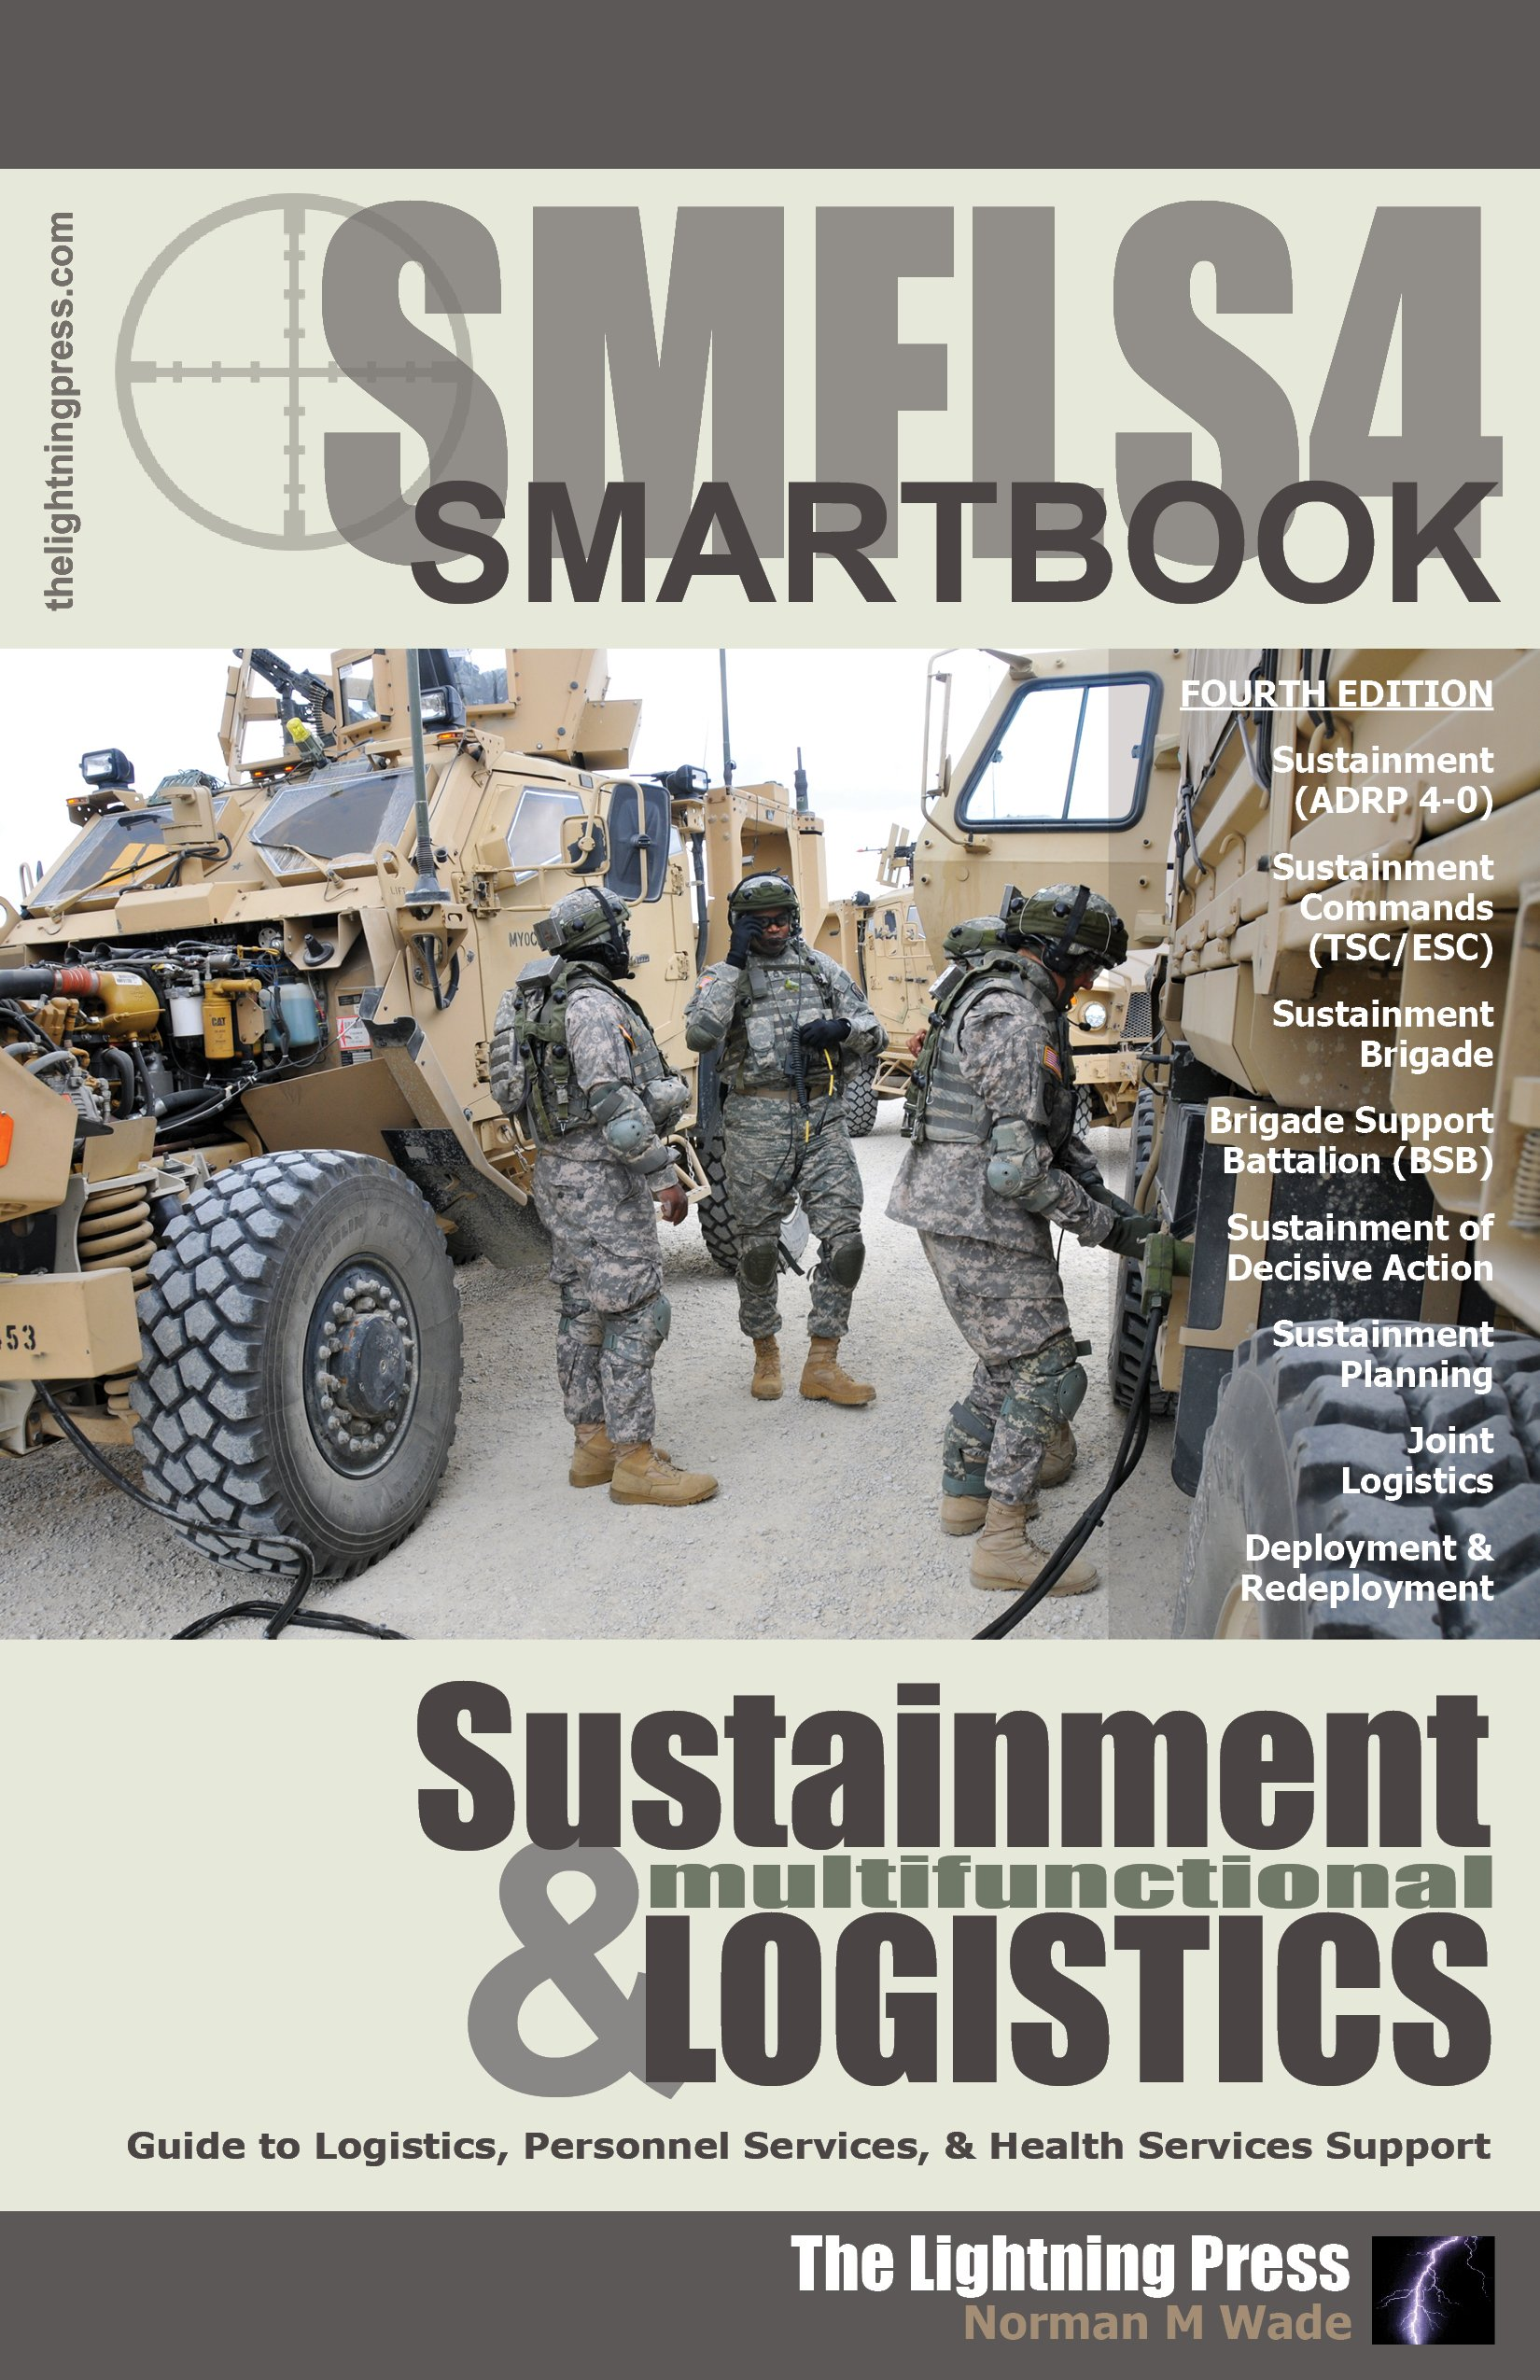 SMFLS4: The Sustainment & Multifunctional Logistics SMARTbook, 4th Ed.